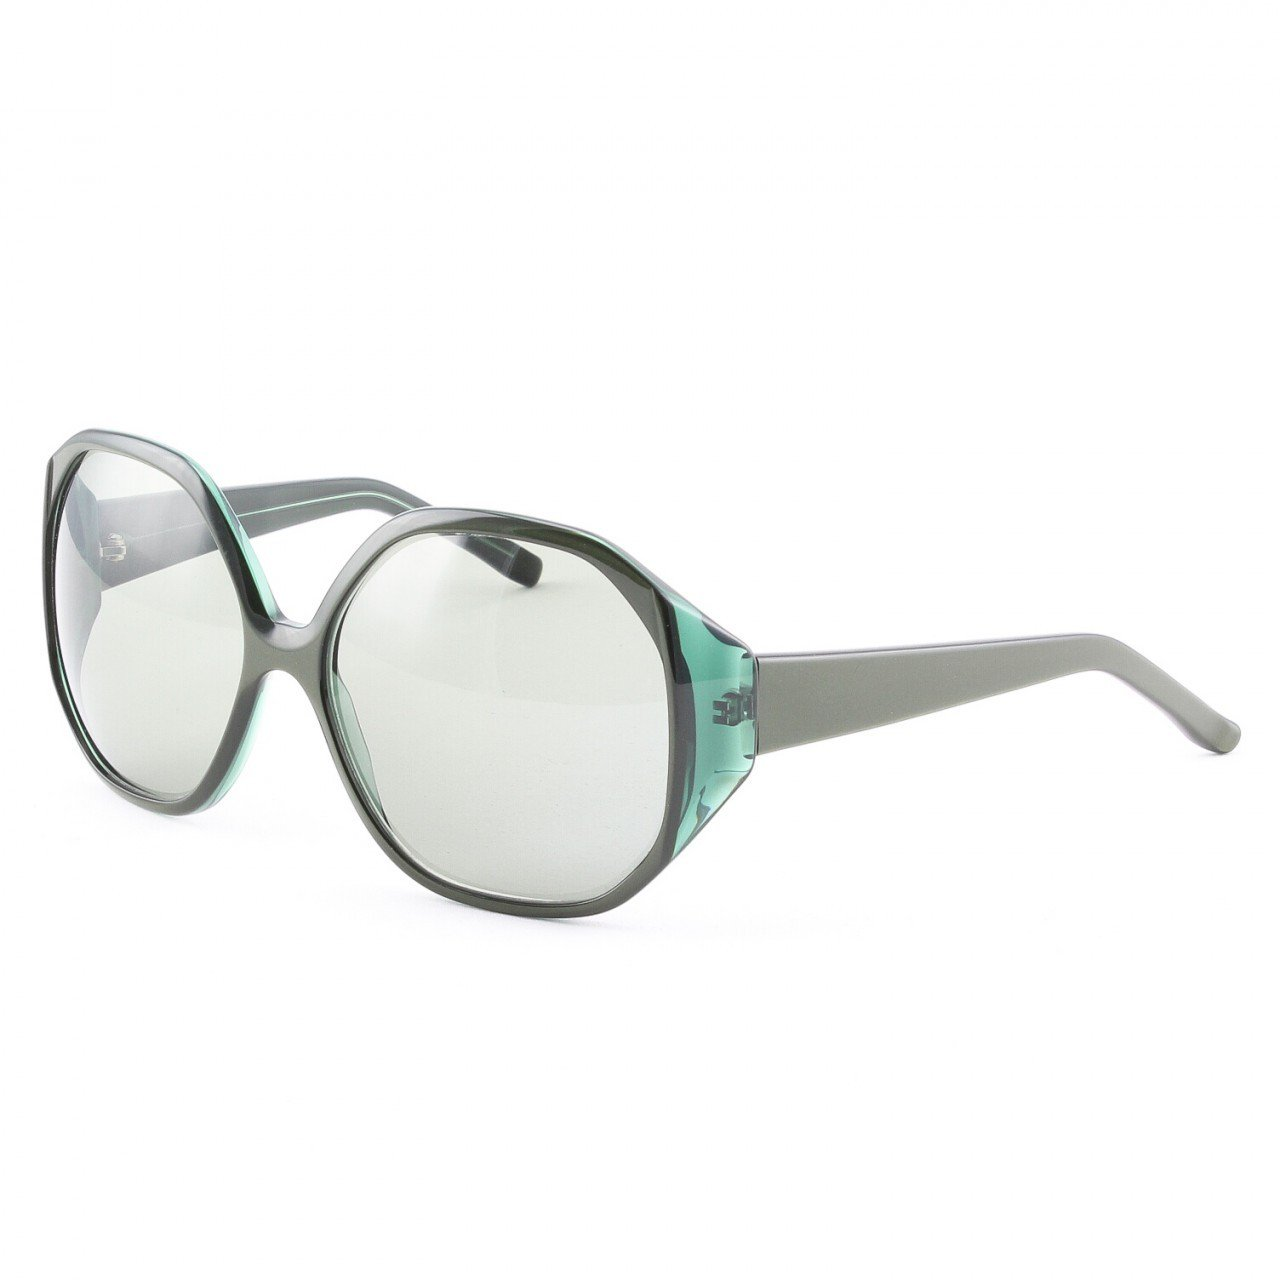 Marni MA218 Sunglasses Col. 01 Translucent and Opaque Green Frame with Gray Lenses